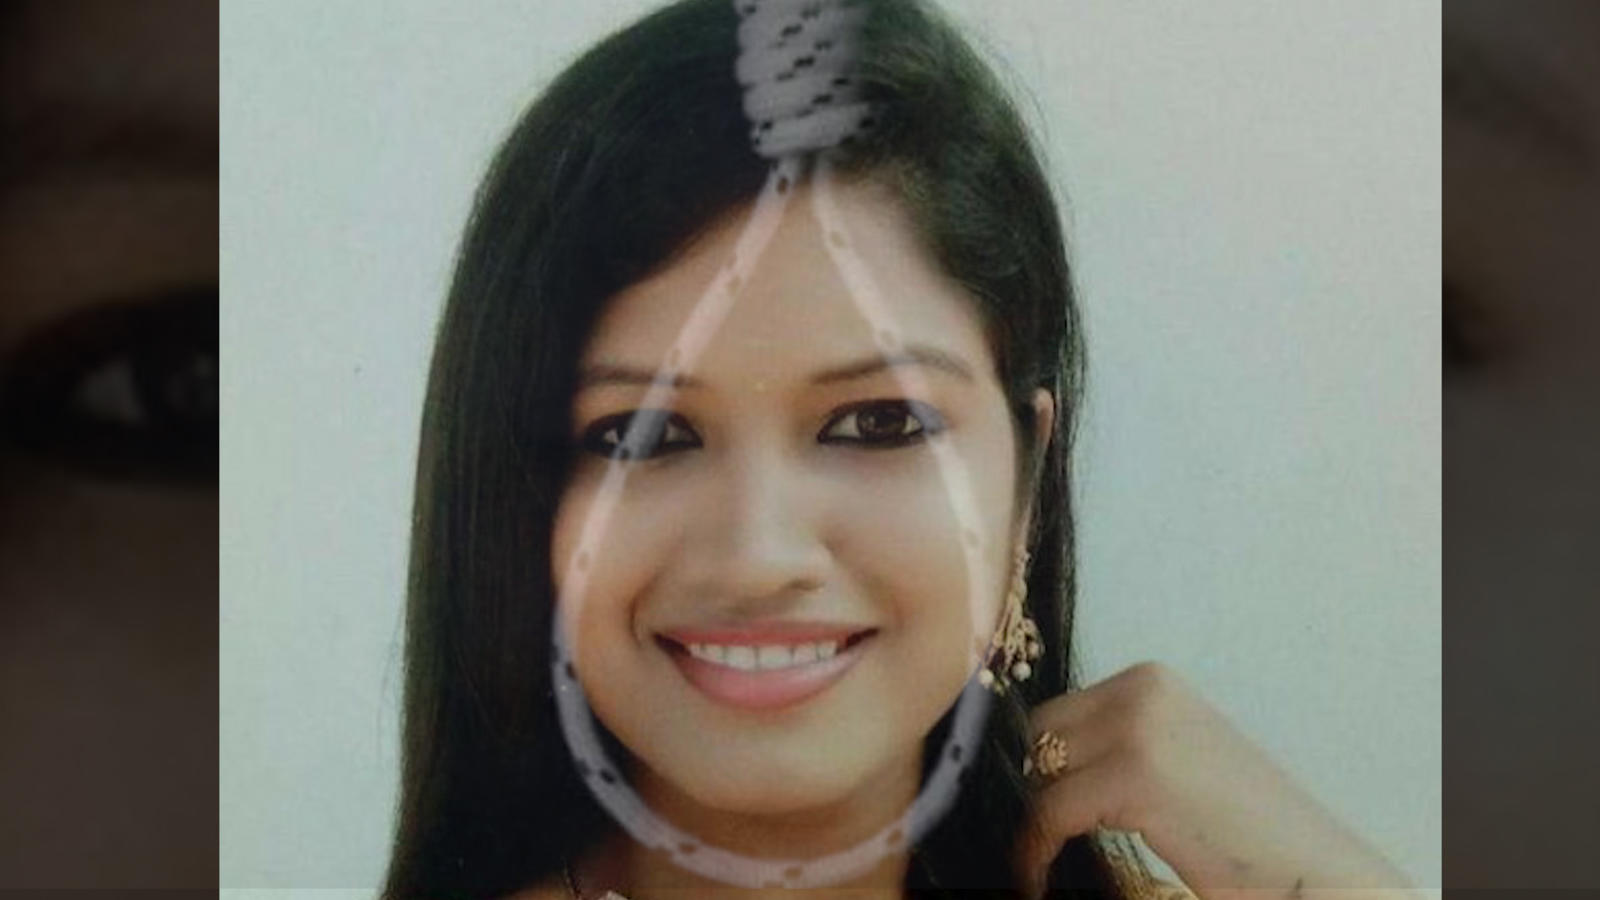 Tamil actress Yashika commits suicide by hanging self